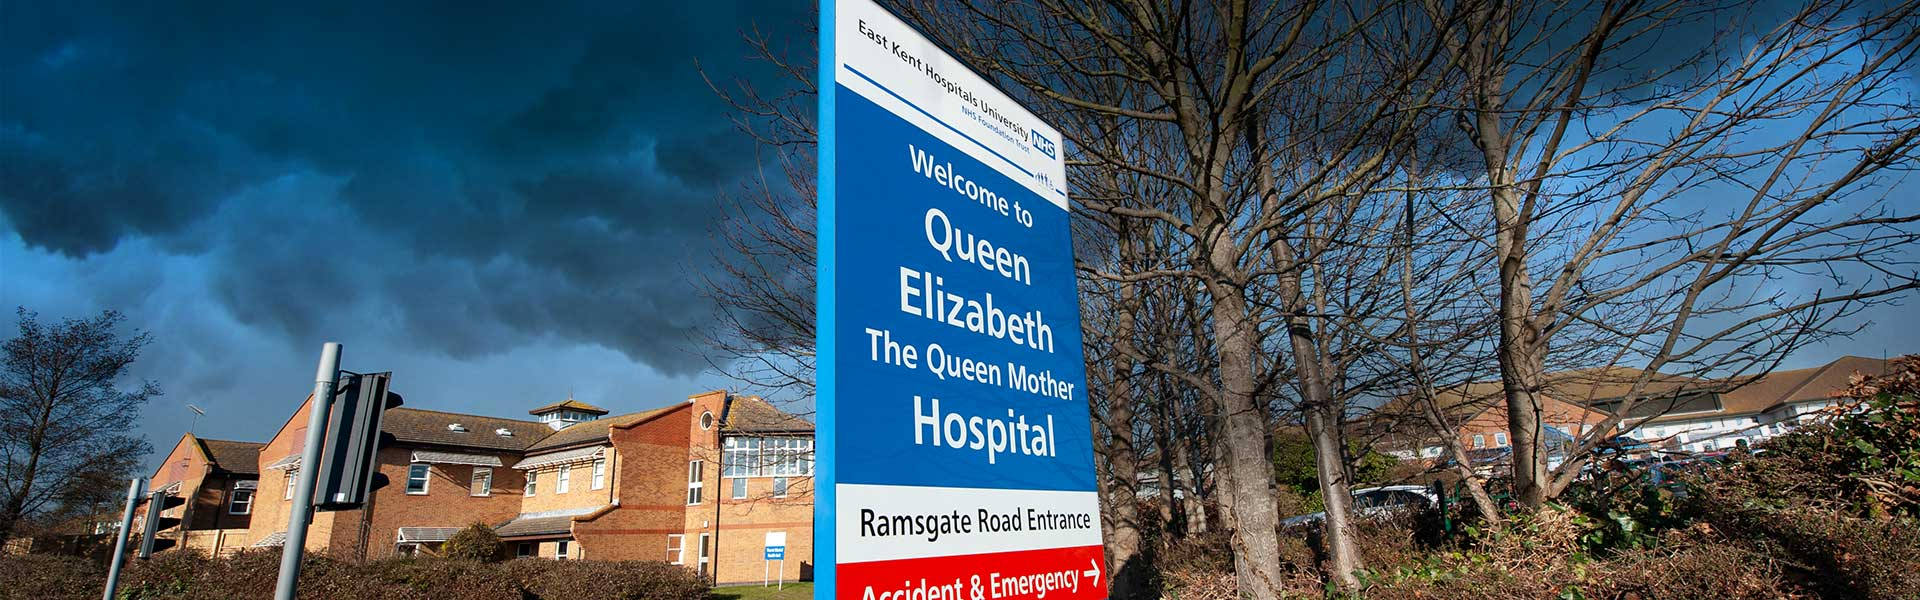 Header image: stormy skies over QEQM Hospital in Margate